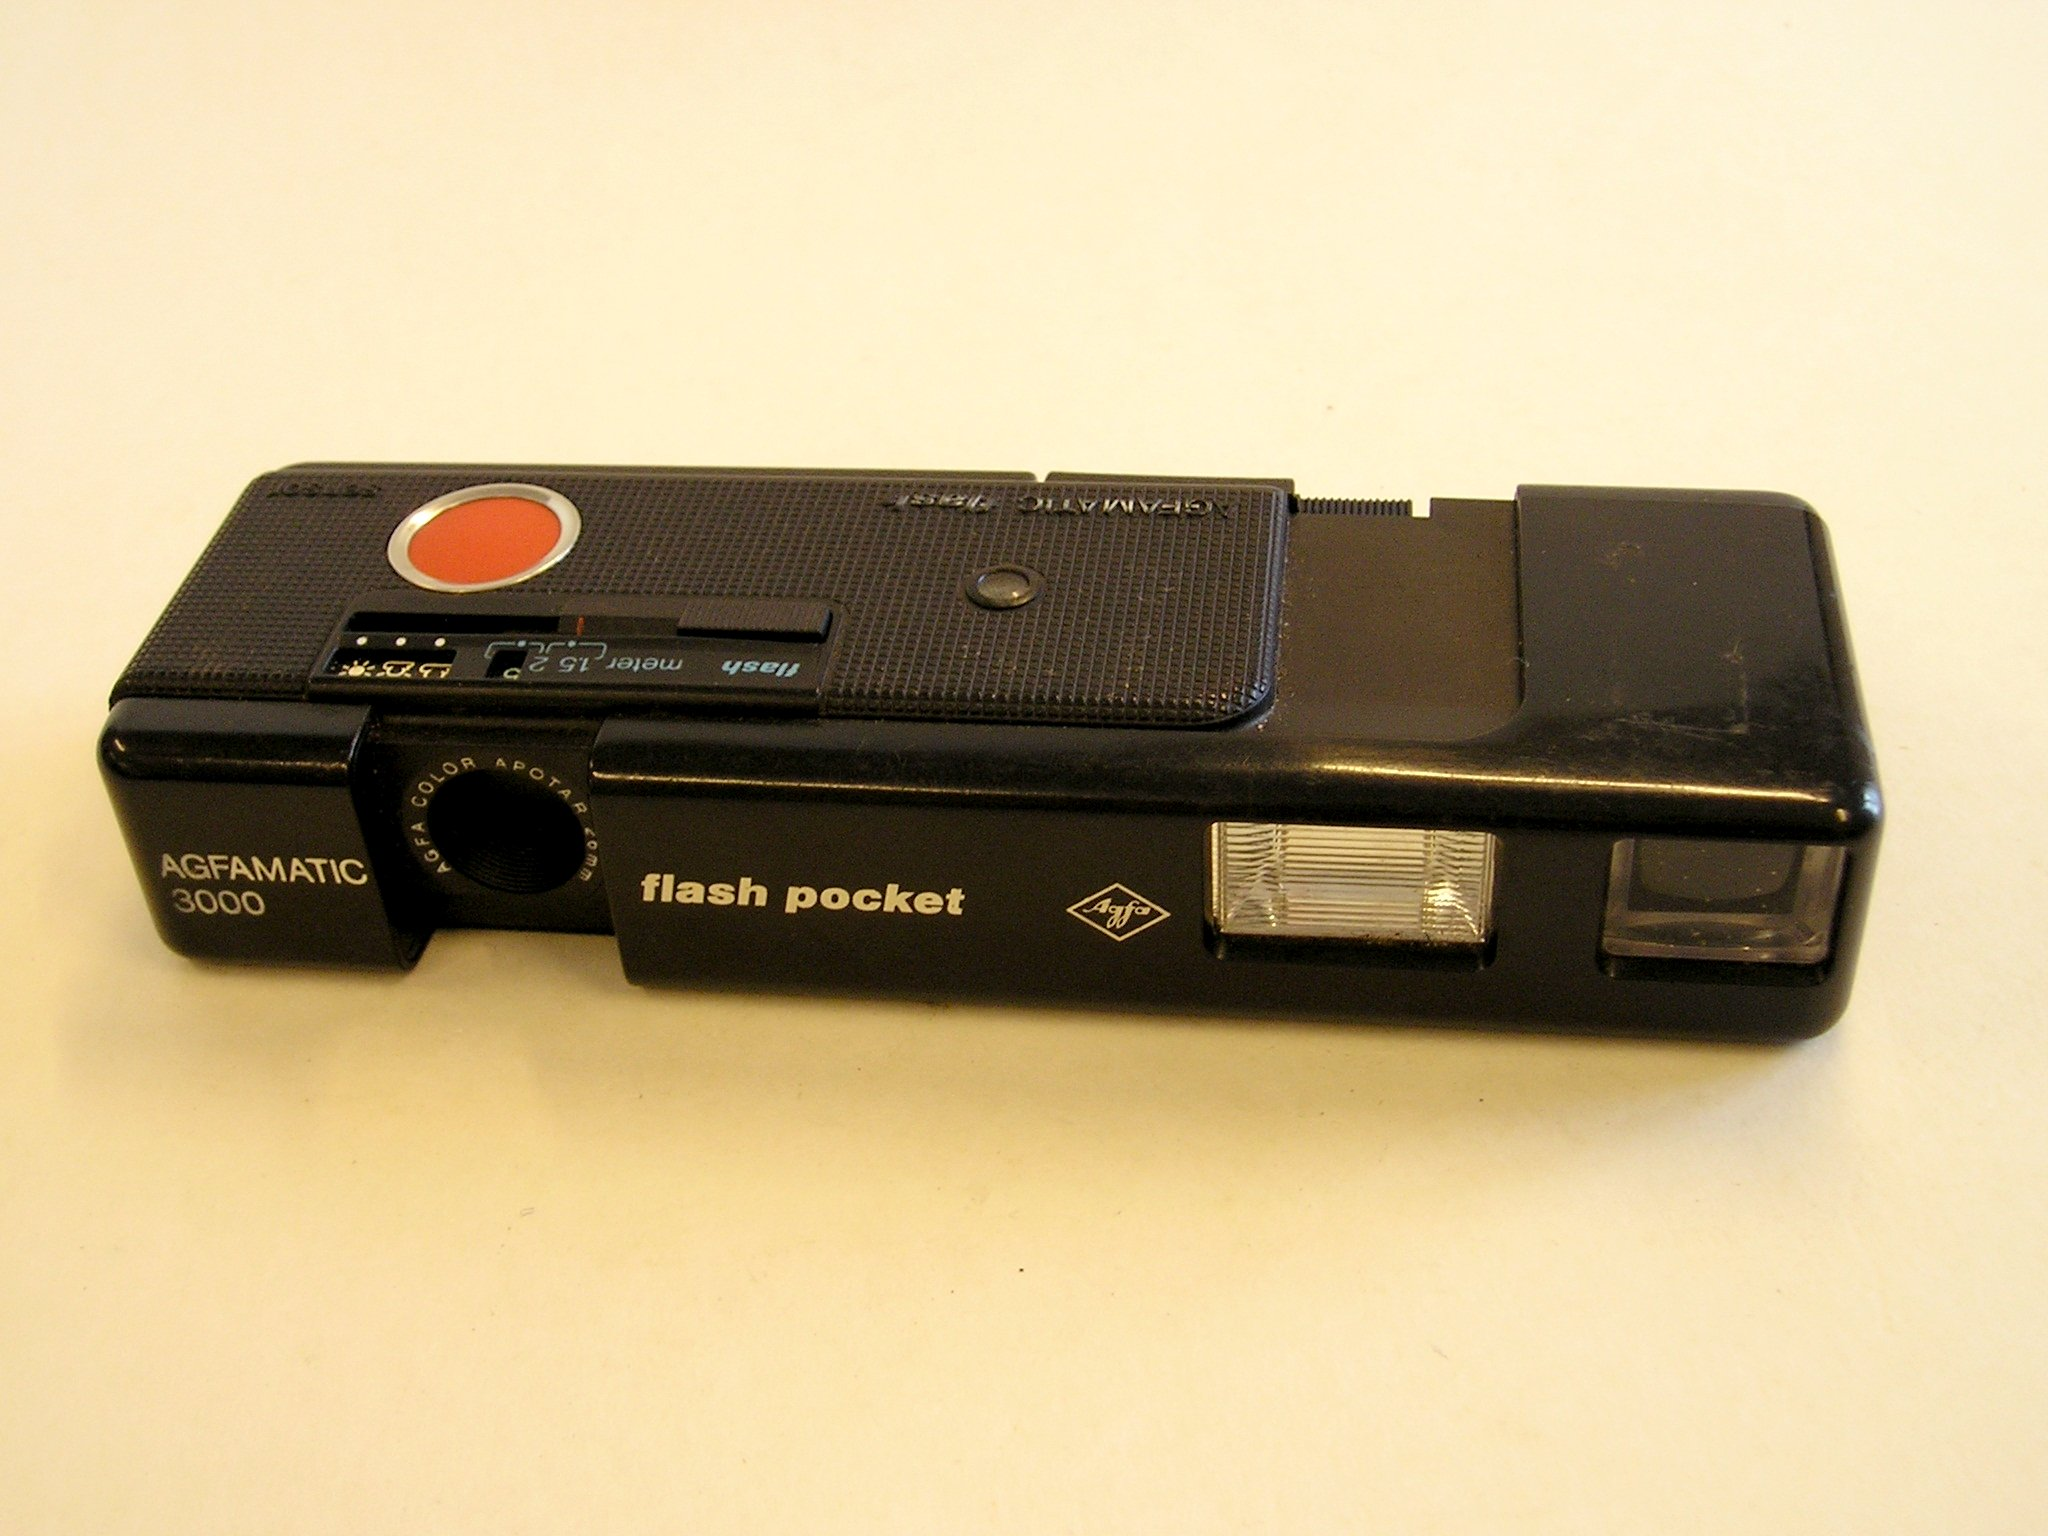 Agfa Agfamatic 3000 Flash Pocket